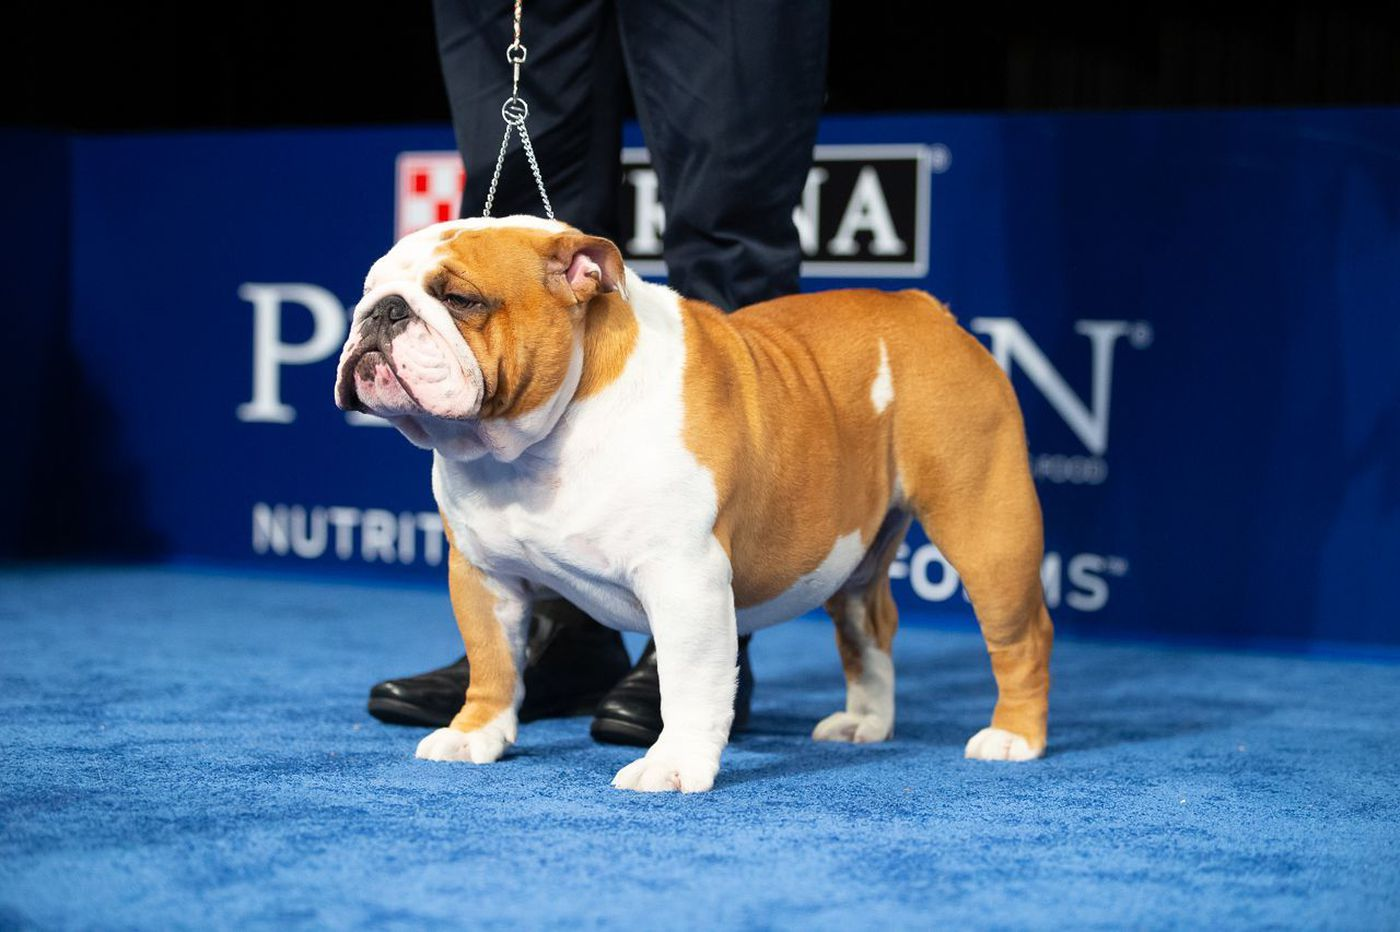 Philly's Dog Show highlighted the English bulldog, but the breed carries a high risk of health woes